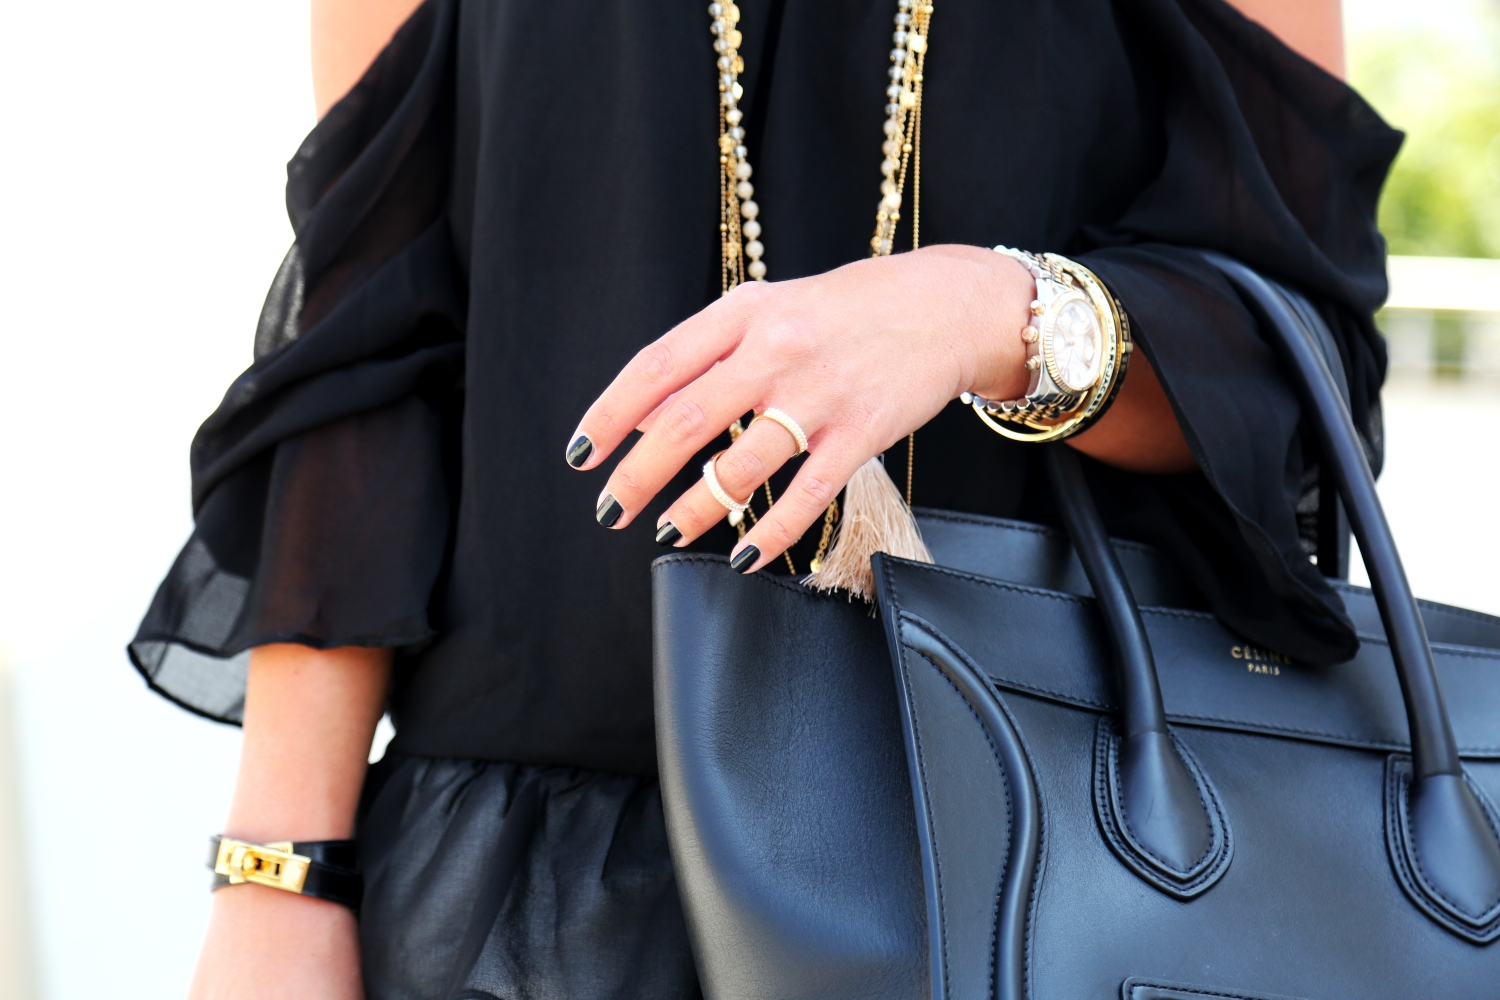 outfit-details-fashionhippieloves-armcandy